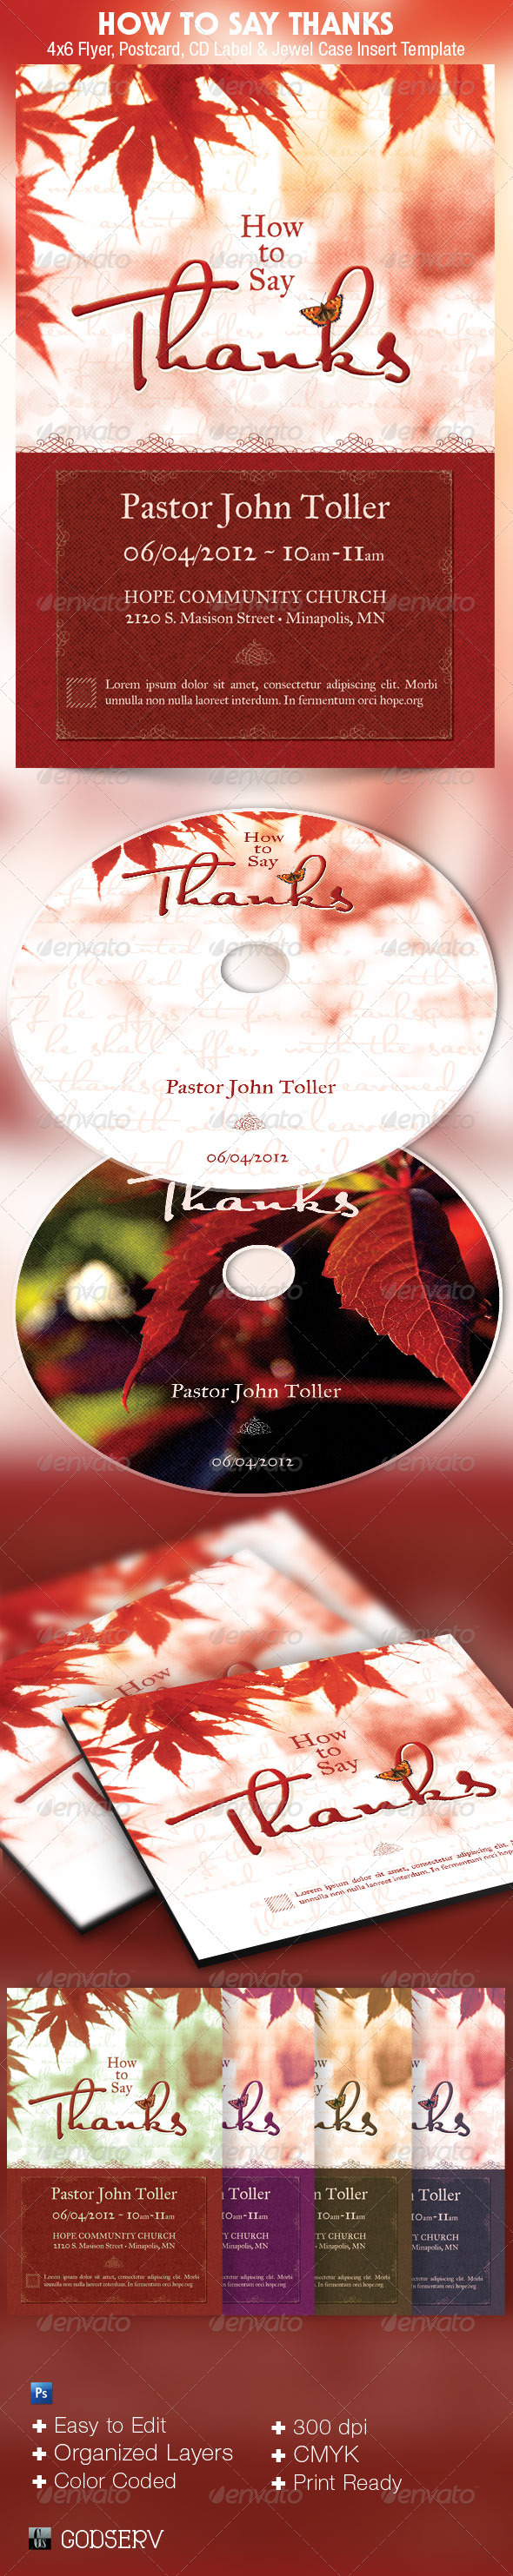 How to Say Thanks Church Flyer and CD Template - Church Flyers